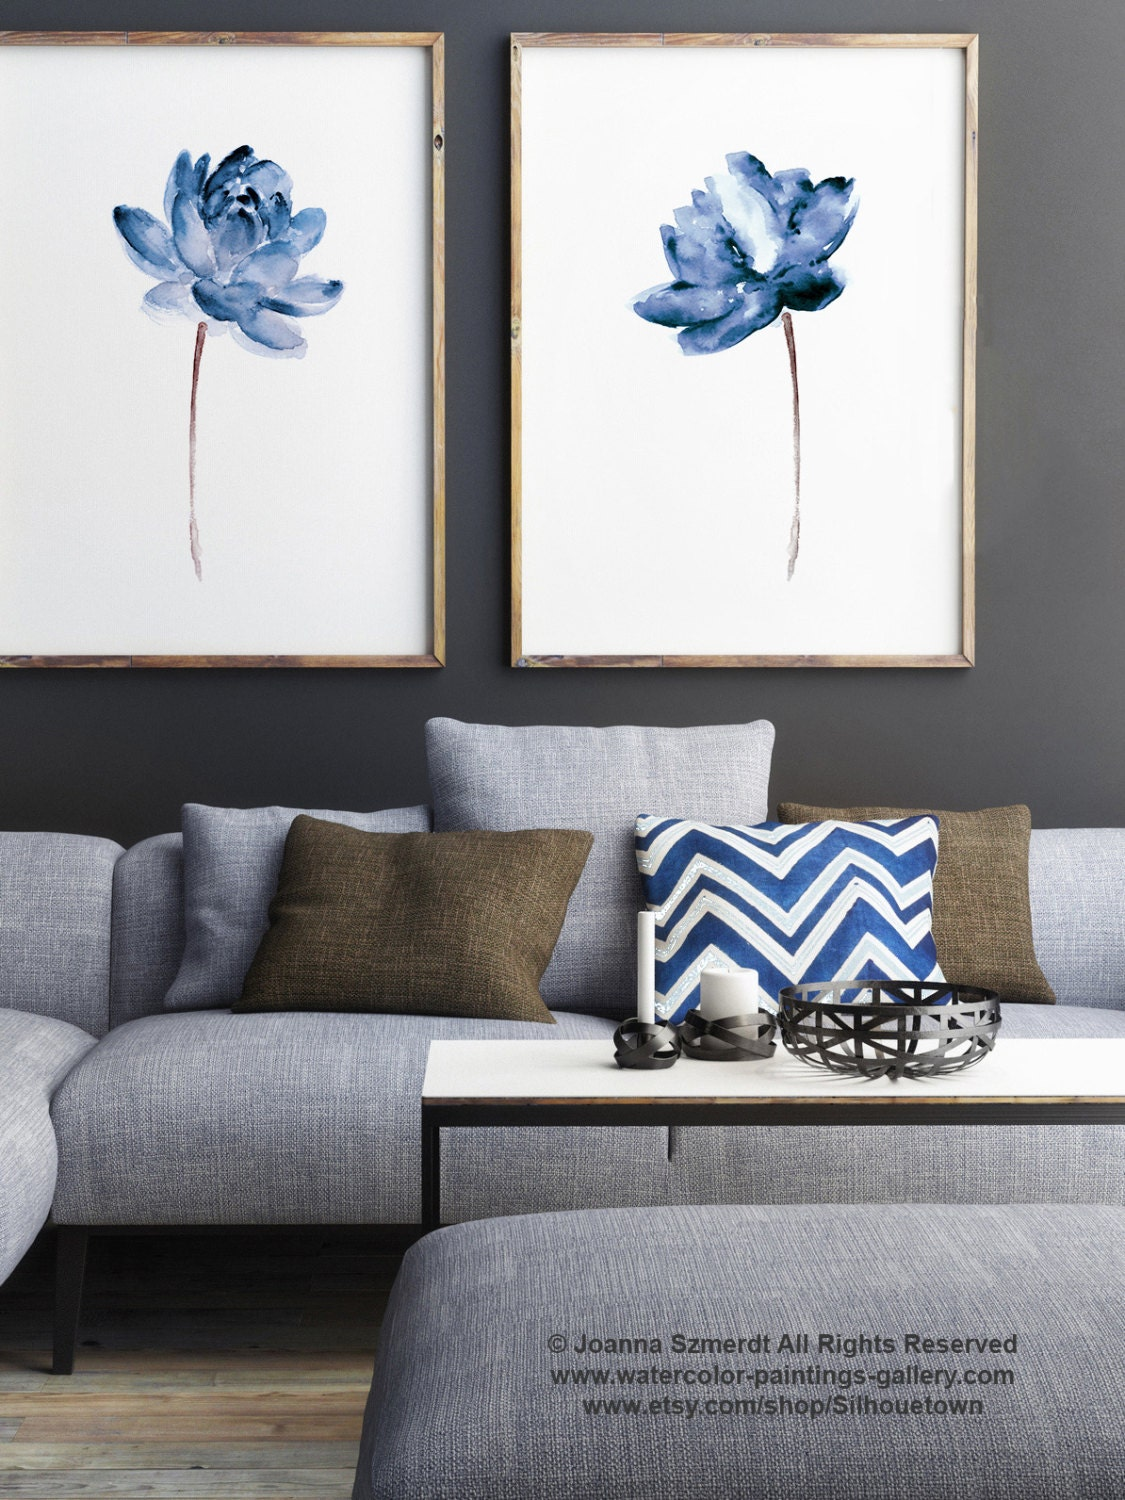 Lotus set of 2 watercolor painting blue water flowers art for Contemporary living room art